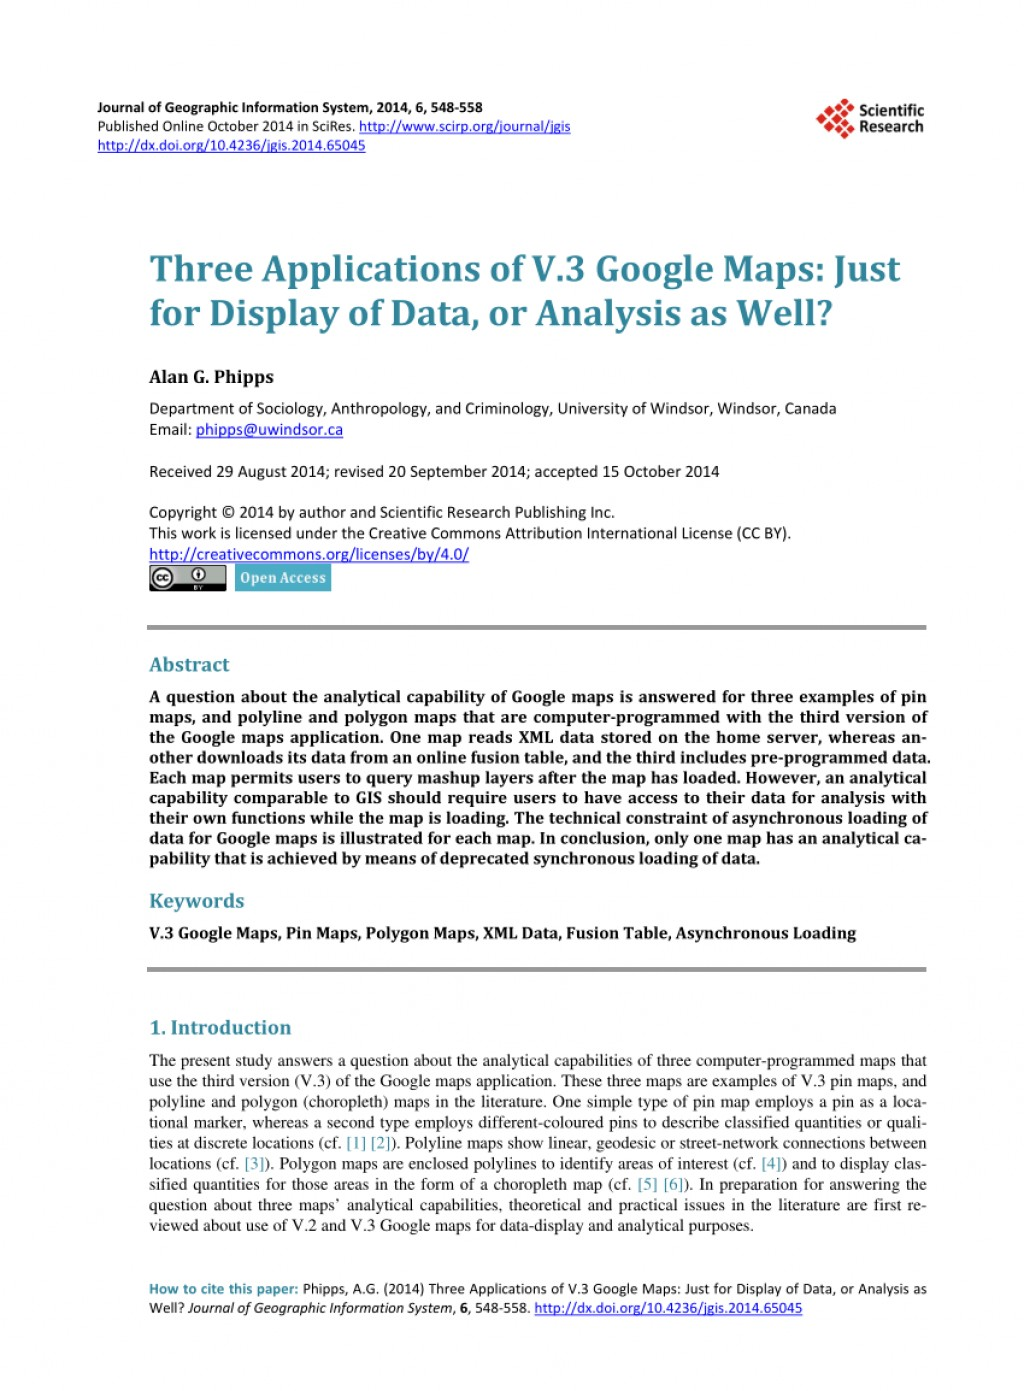 005 Google Maps Research Papers Paper Wonderful Large